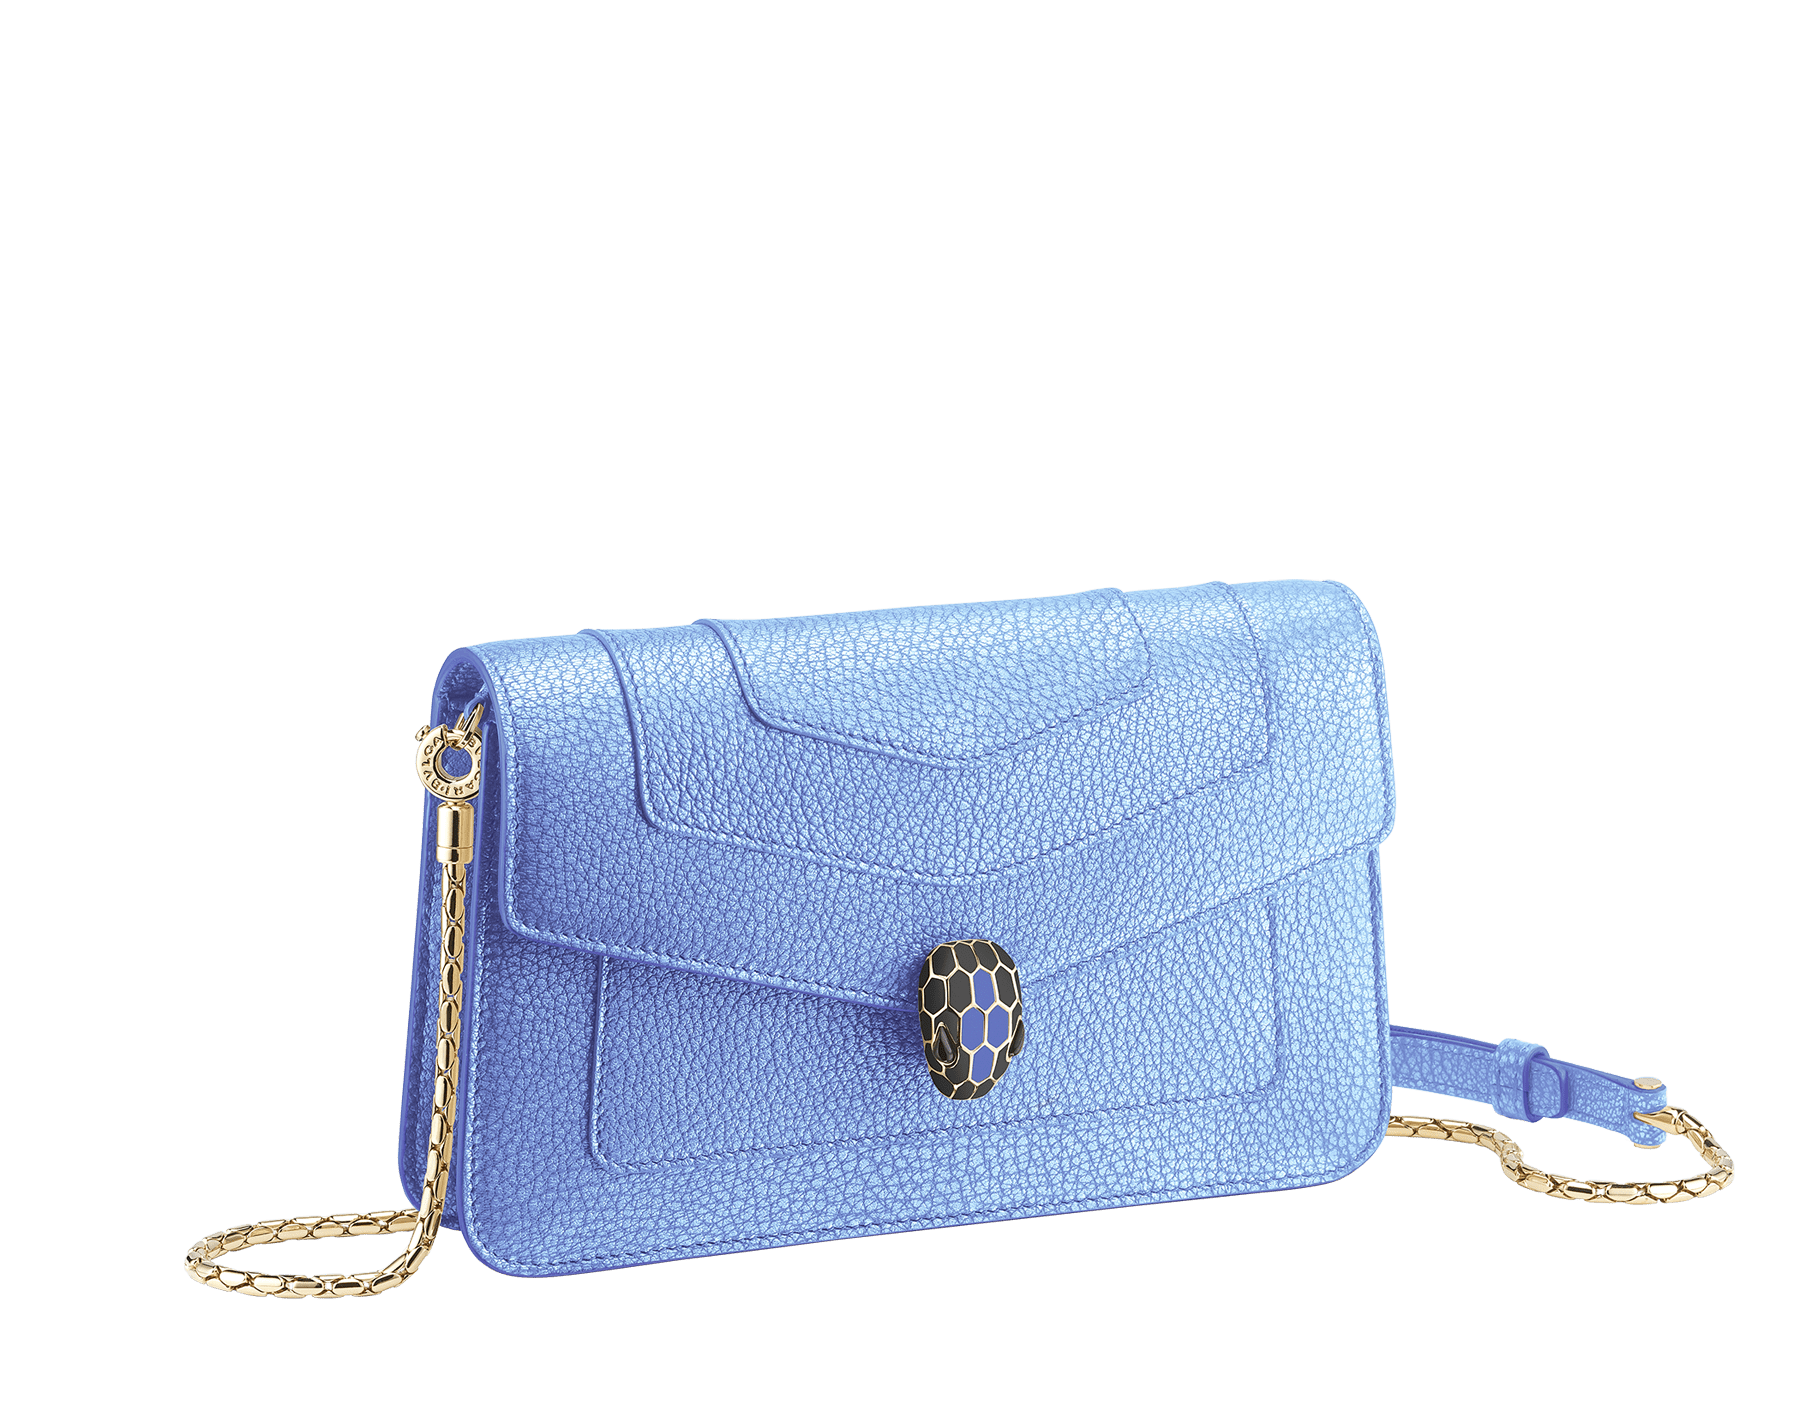 """""""Serpenti Forever"""" new chain wallet in Charcoal Diamond gray goatskin with a pearled effect and black nappa leather. Dark ruthenium-plated brass iconic snakehead stud closure enameled in matte and shiny black, finished with black onyx eyes. SEA-CHAINPOCHETTE-PSL image 1"""